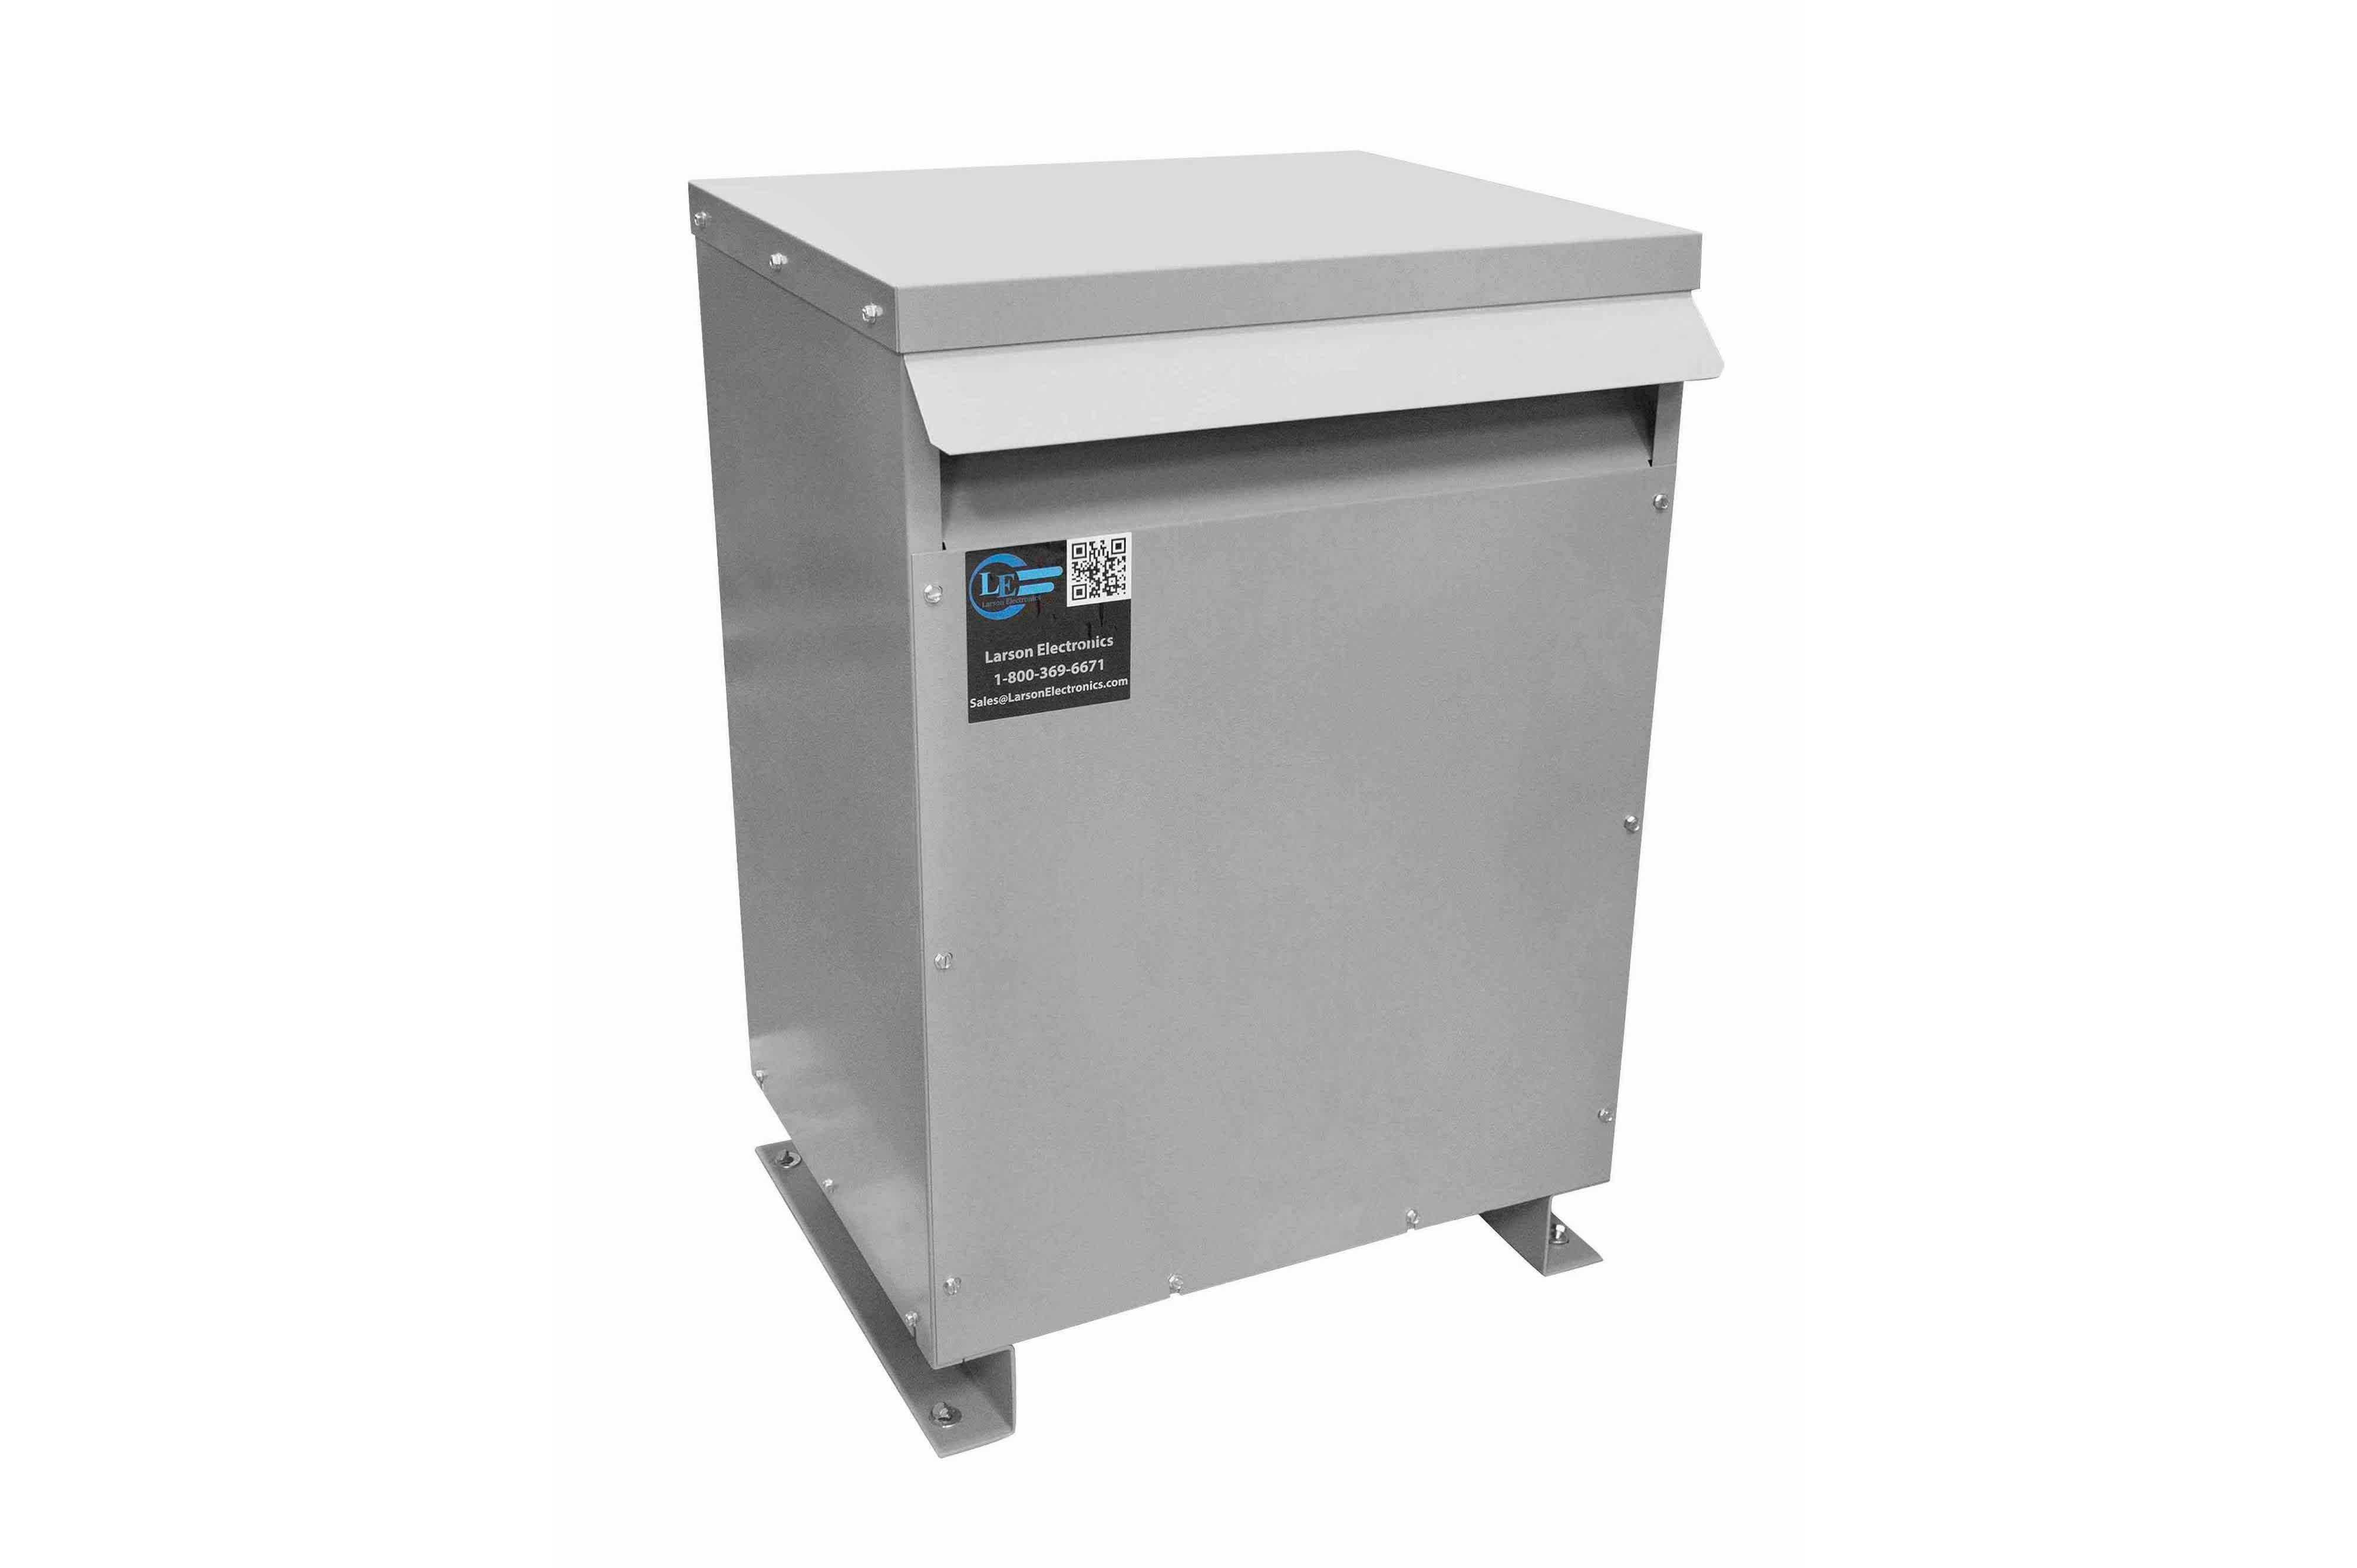 38 kVA 3PH Isolation Transformer, 480V Wye Primary, 208Y/120 Wye-N Secondary, N3R, Ventilated, 60 Hz